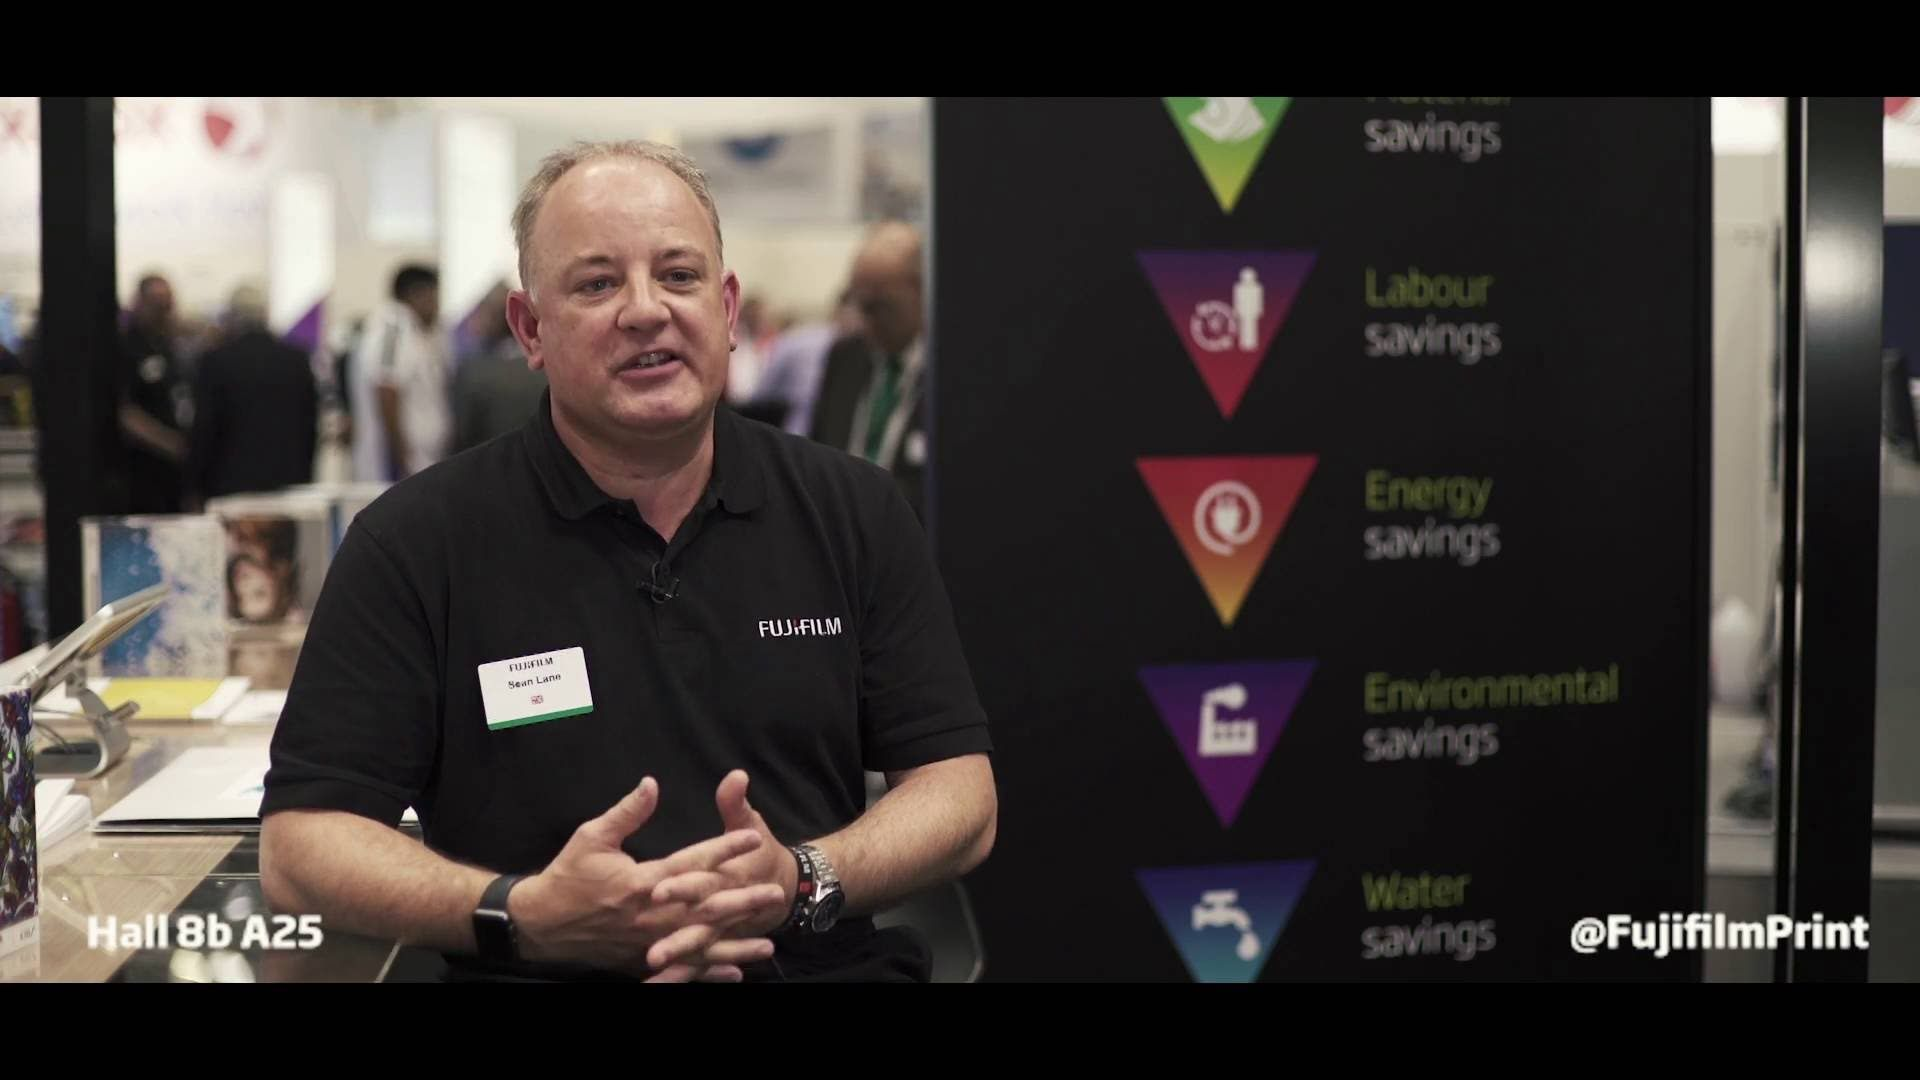 Sean Lane, Group product manager - for offset solutions at drupa 2016 talks through the SUPERIA solutions from Fujifilm